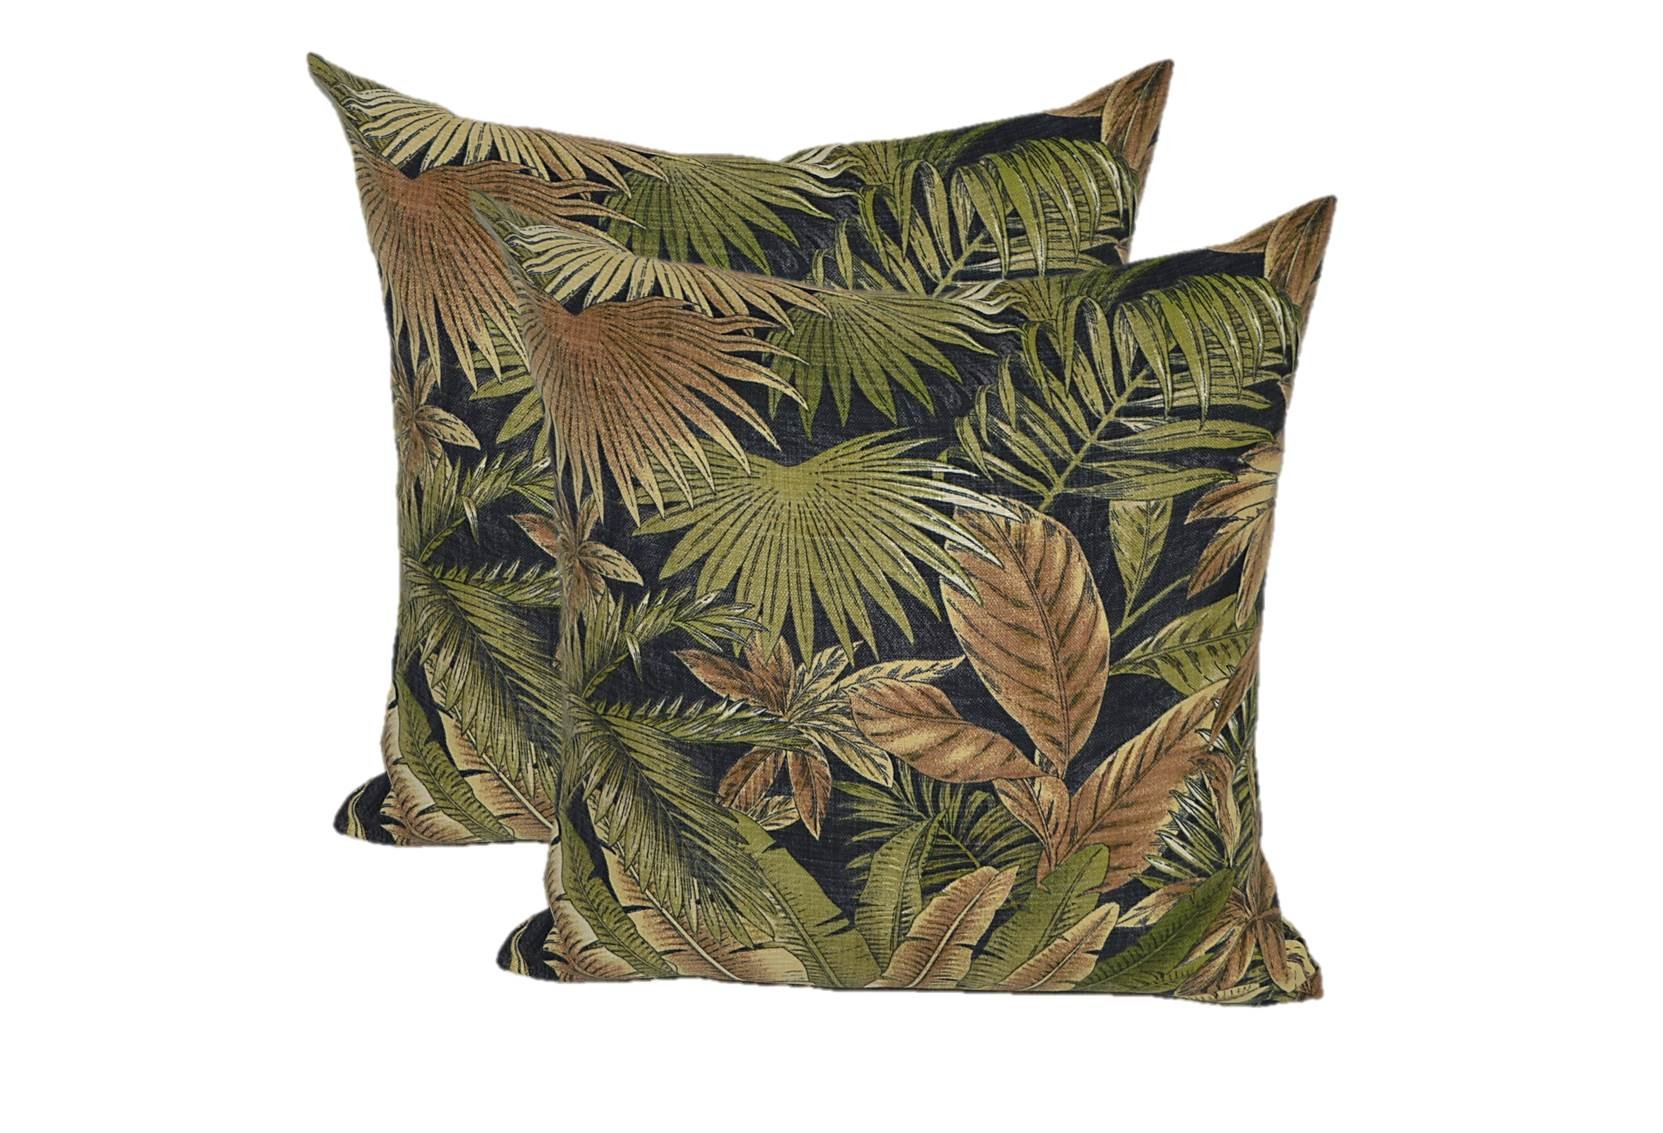 Set of 2 - Indoor / Outdoor Square Decorative Throw / Toss Pillows - Tommy Bahama Bahamian Breeze - Black Green Tan Tropical Palm Leaf - Choose Size (17'' x 17'')